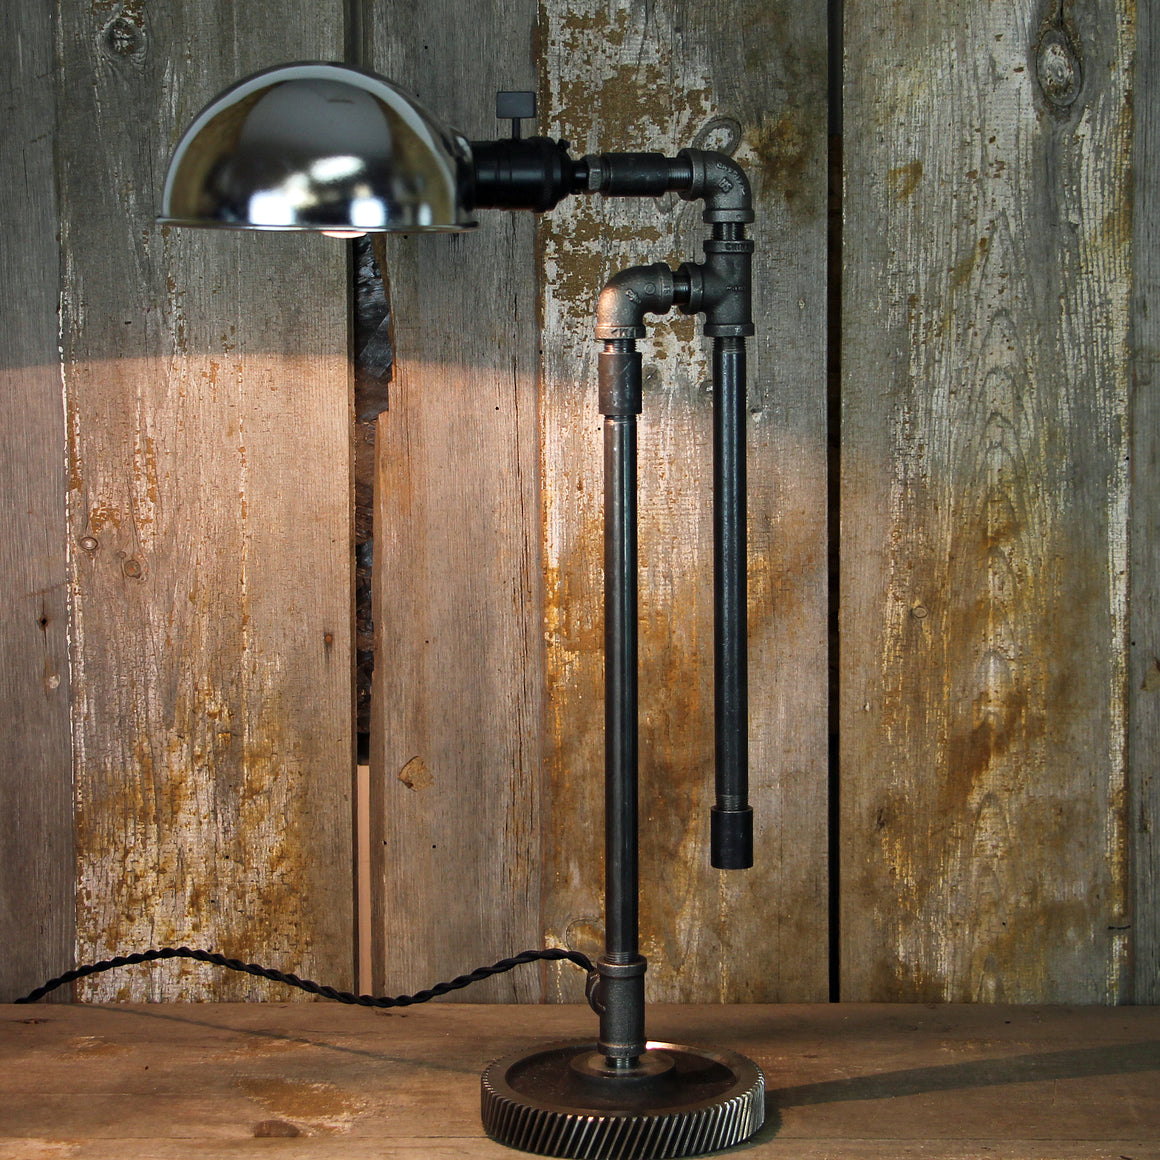 Industrial Contemporary Steampunk Table Desk Lamp #132 - The Lighting Works